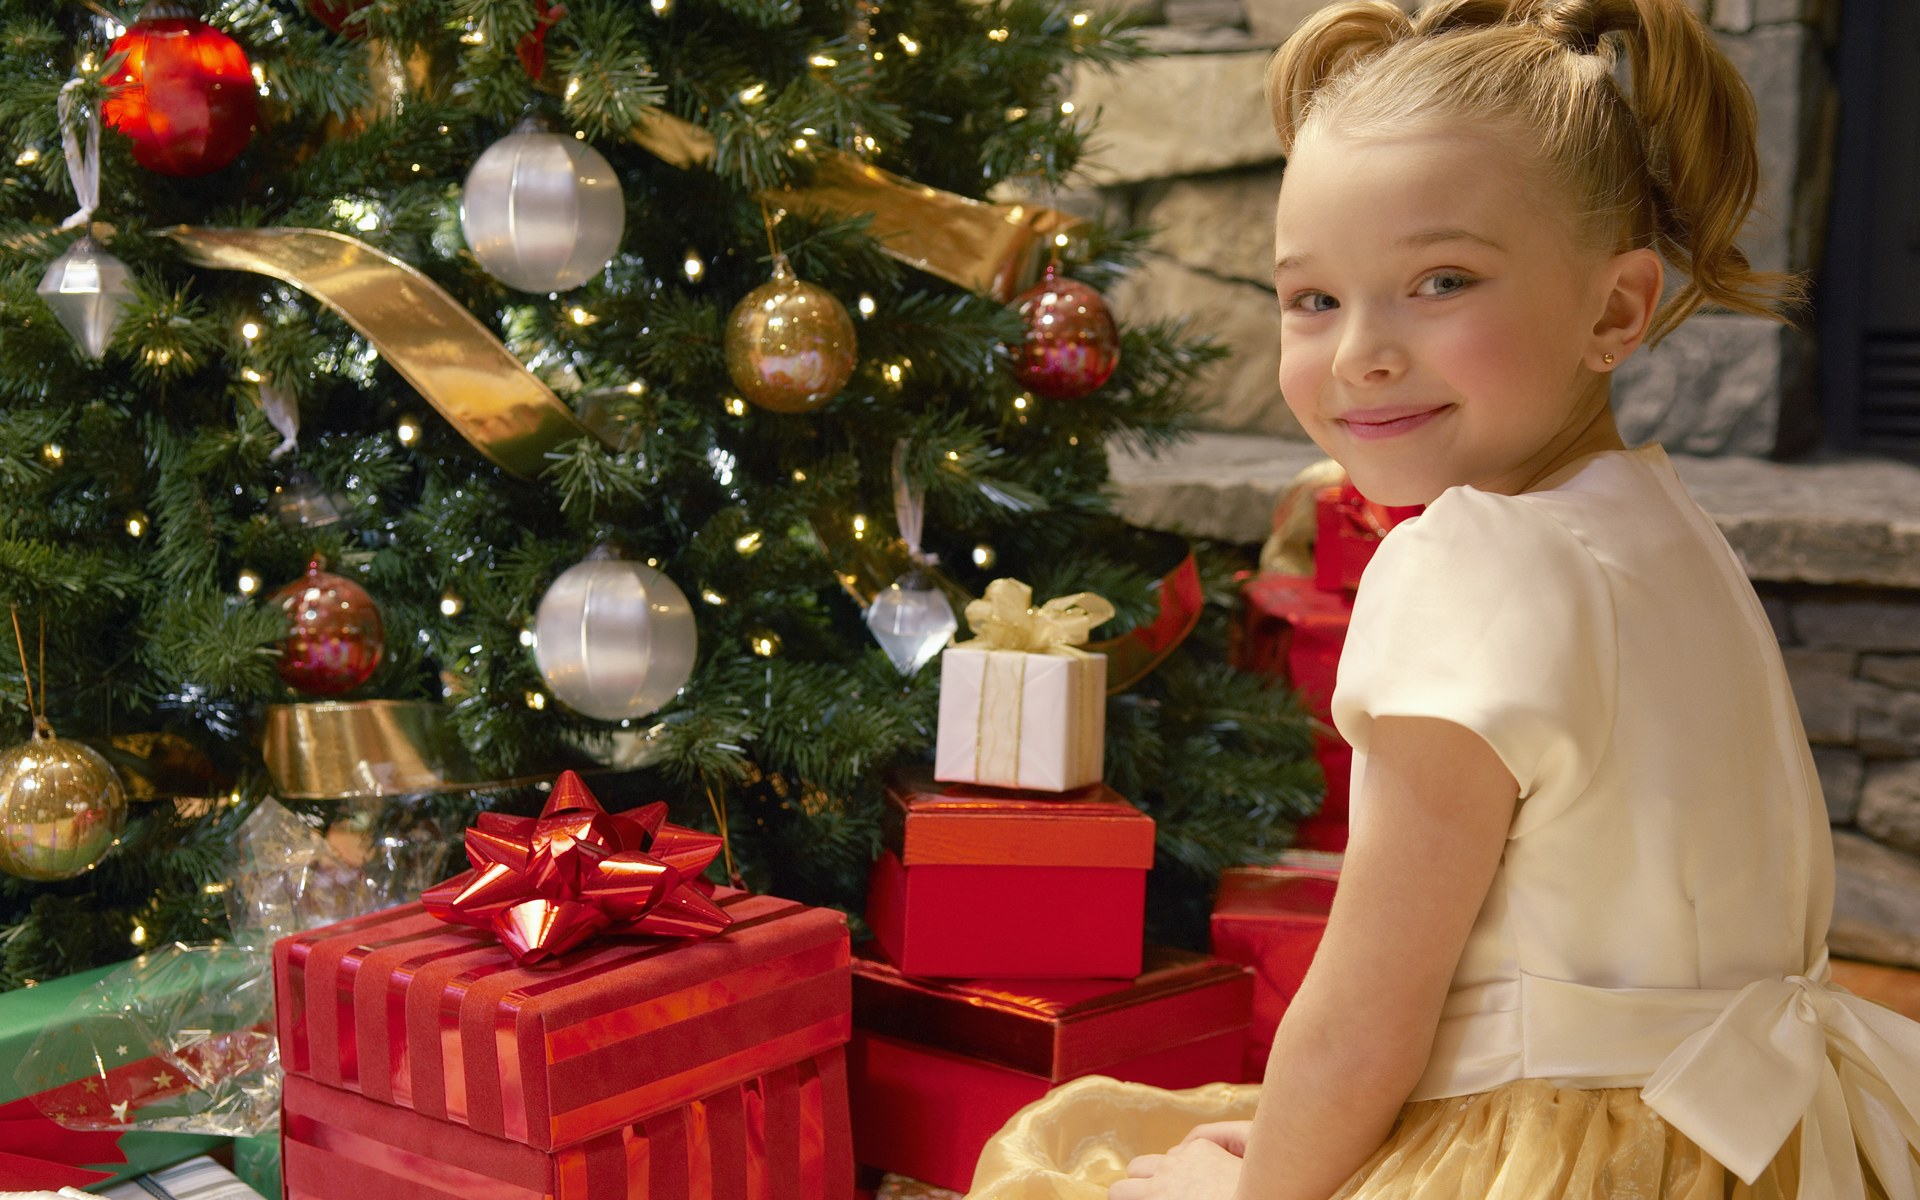 pauls kids christmas video - HD 1920×1200